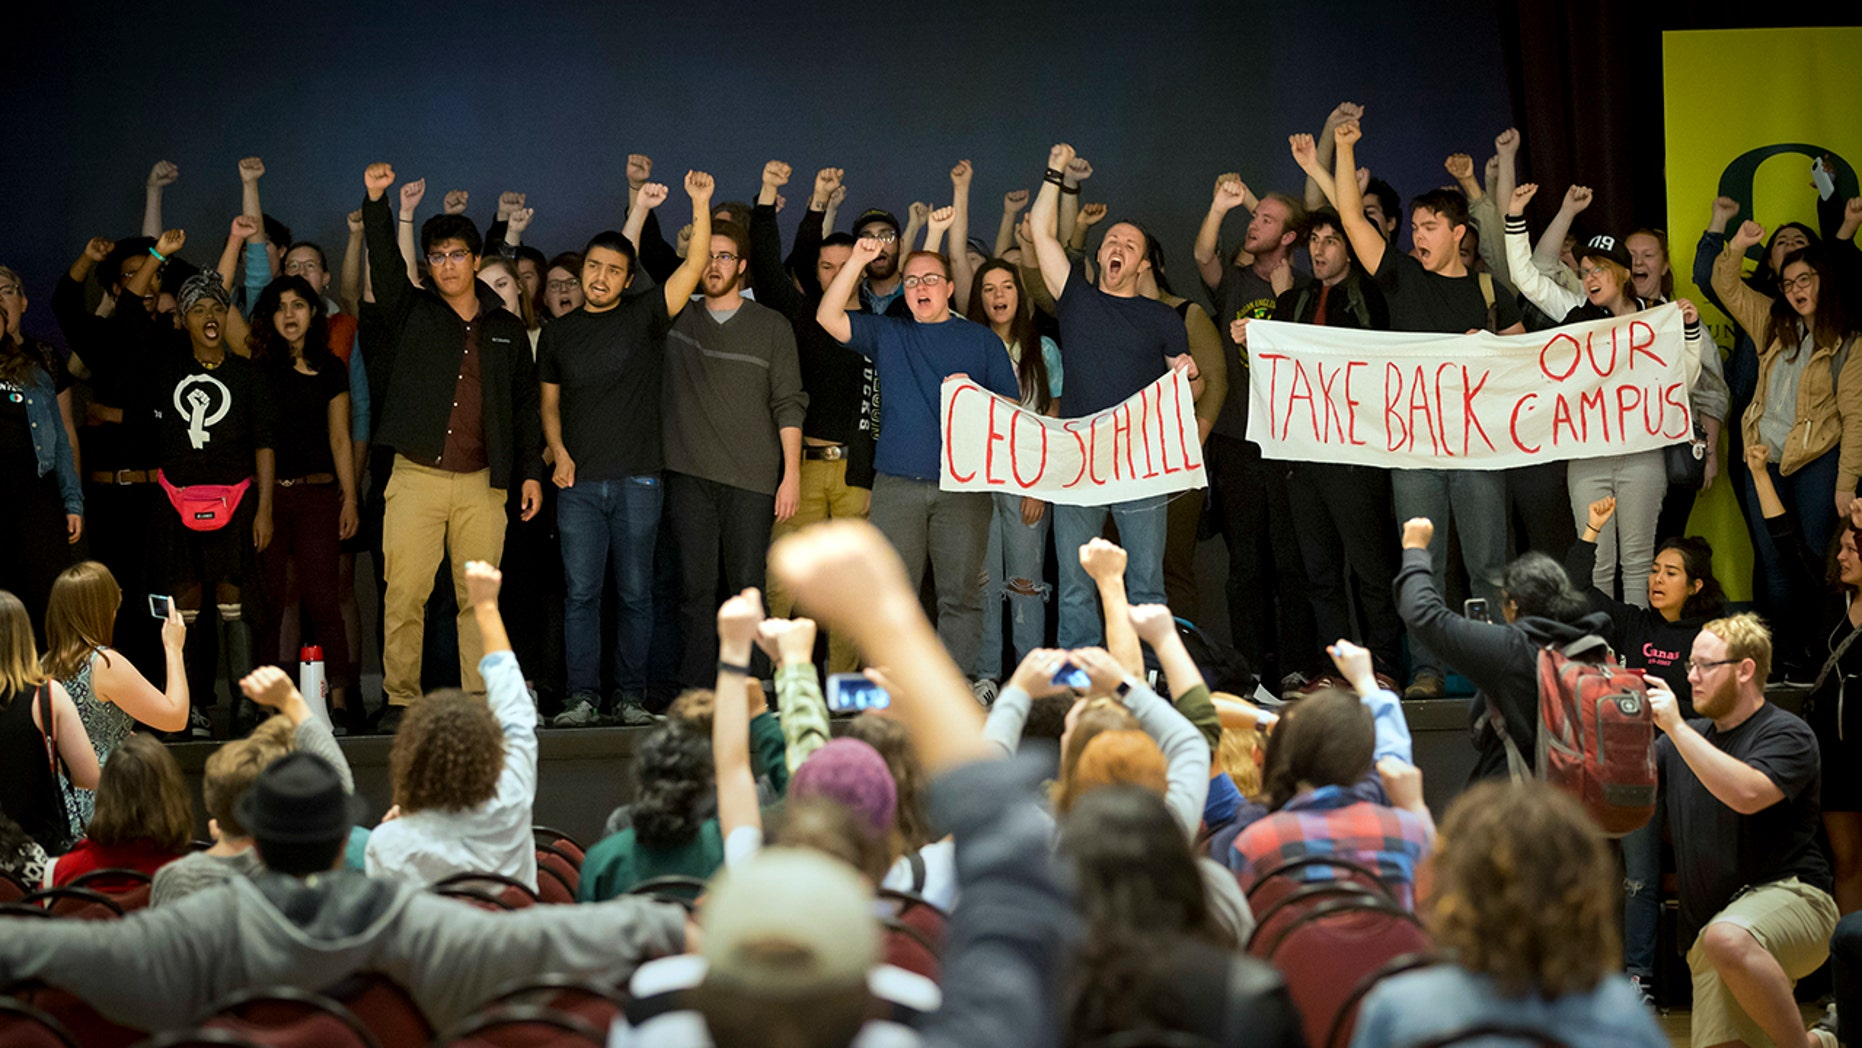 """University of Oregon students chant """"This is a revolution!"""" as they stand on the stage of the Erb Memorial Union Ballroom where President Michael Schill was scheduled to give his State of the University speech in Eugene, Ore., Friday October 6, 2017."""